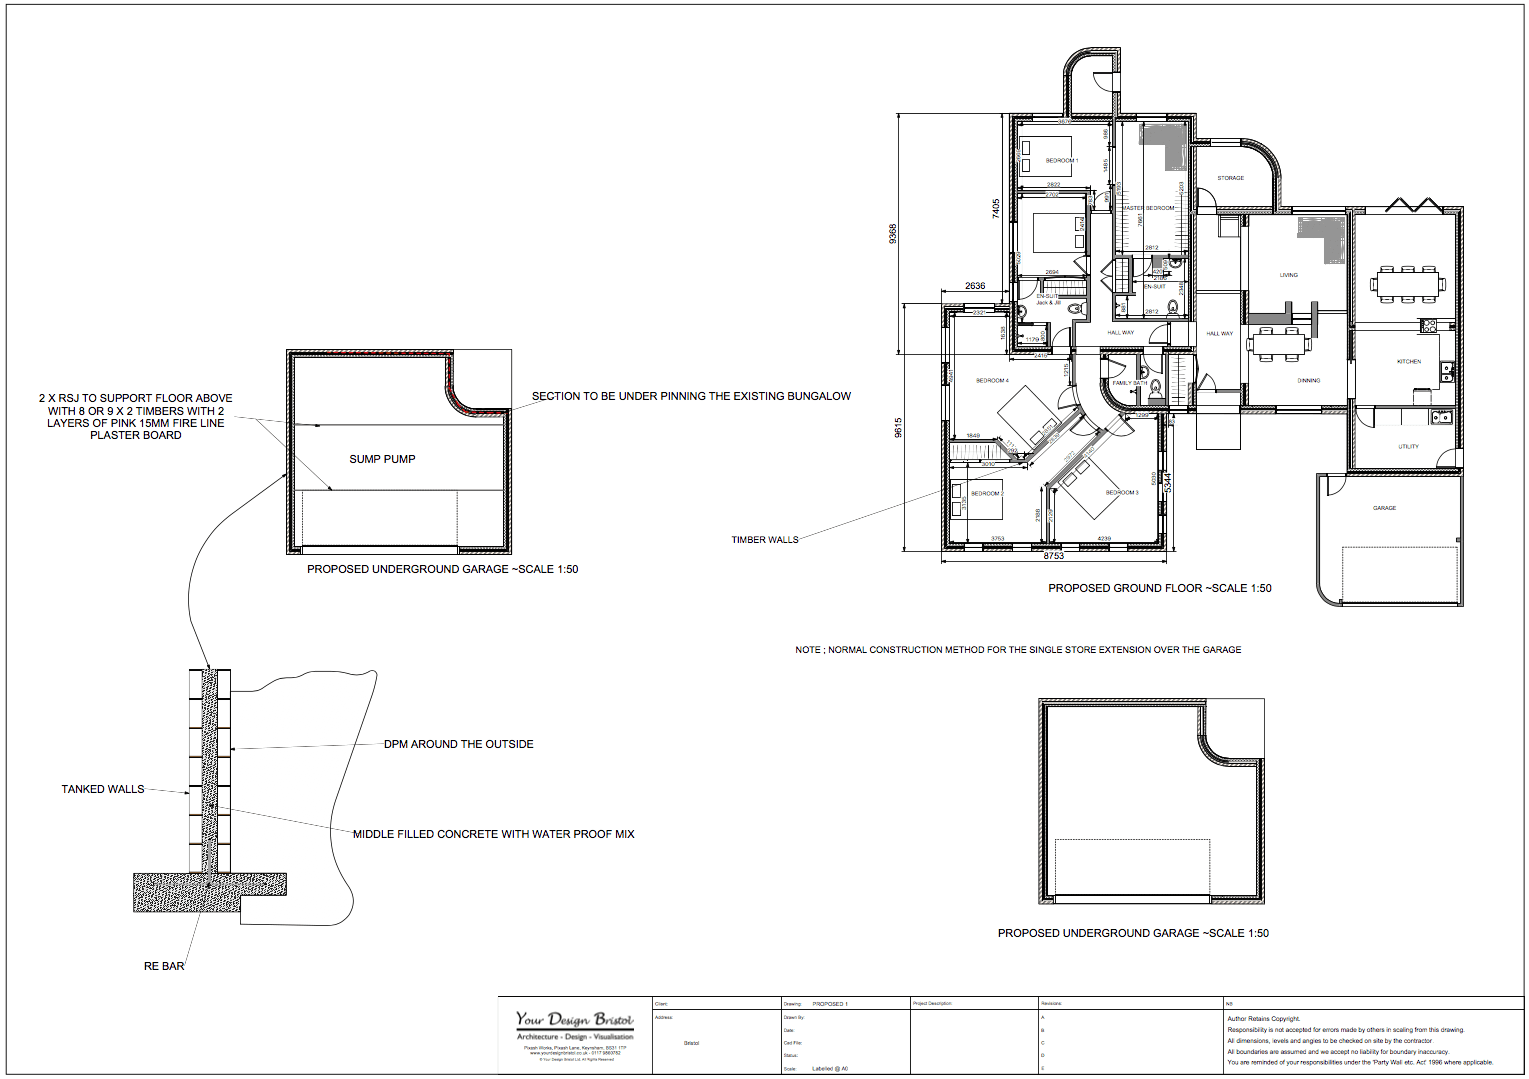 Bed and breakfast design drawings and visualisation for Underground garage design plans